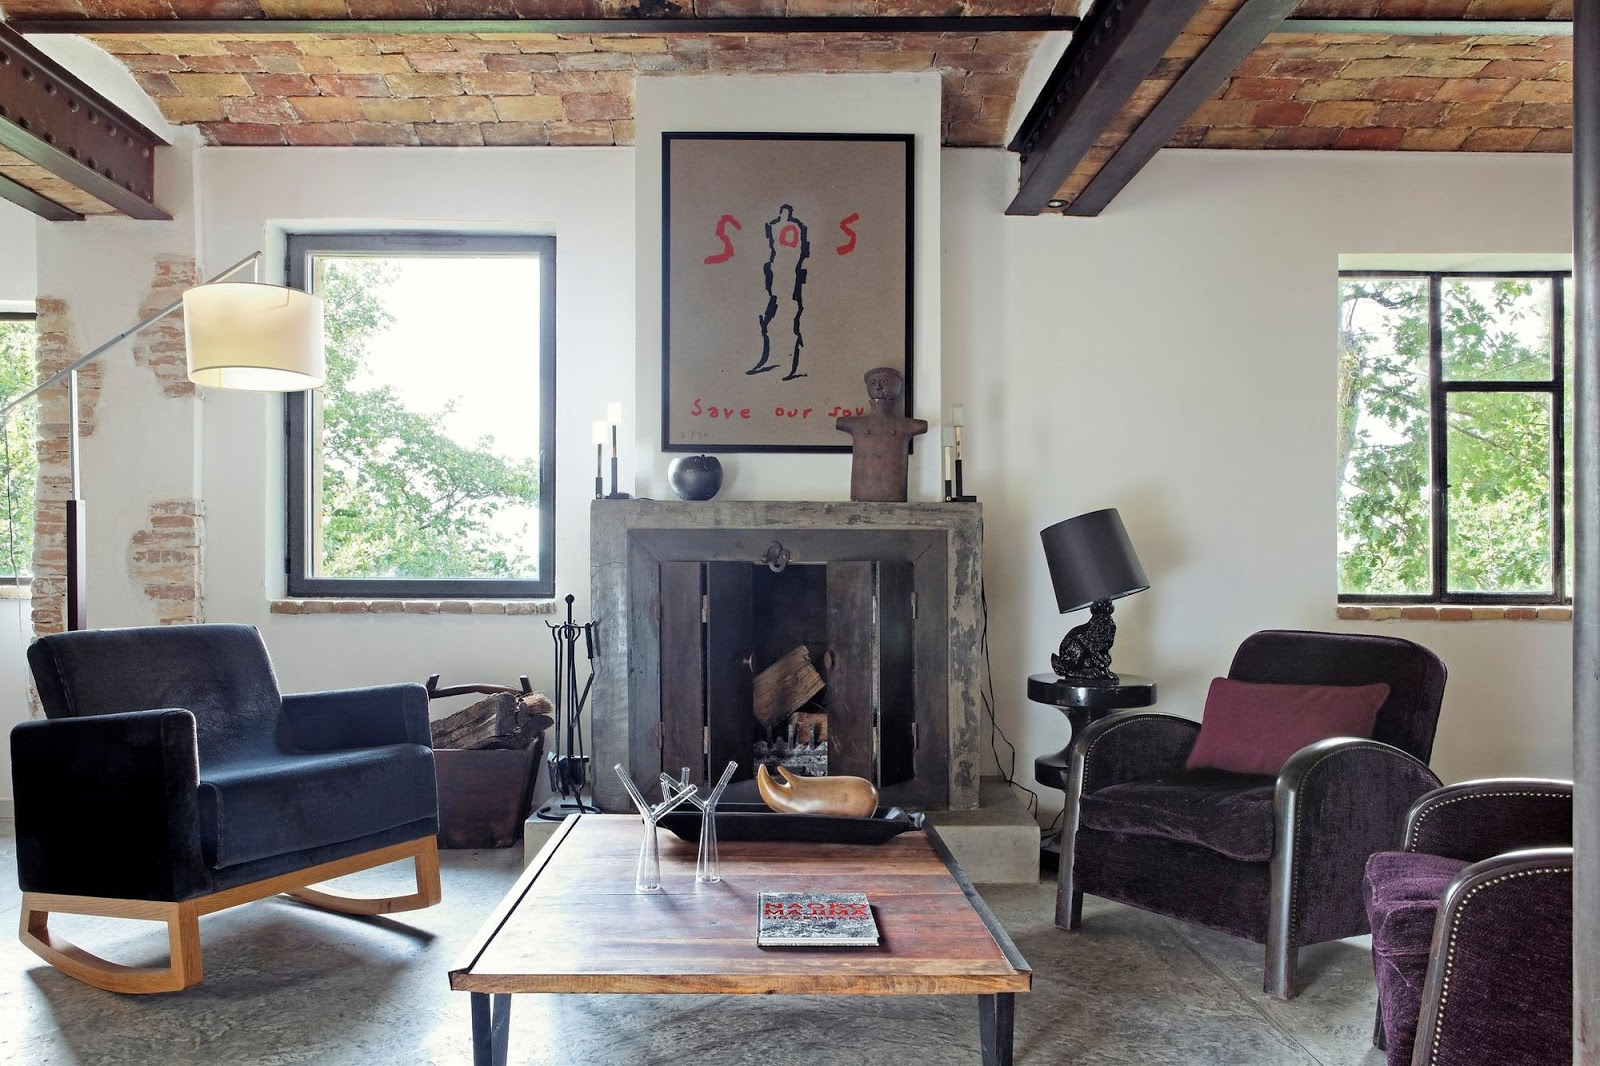 A stone house in South France with an eclectic style